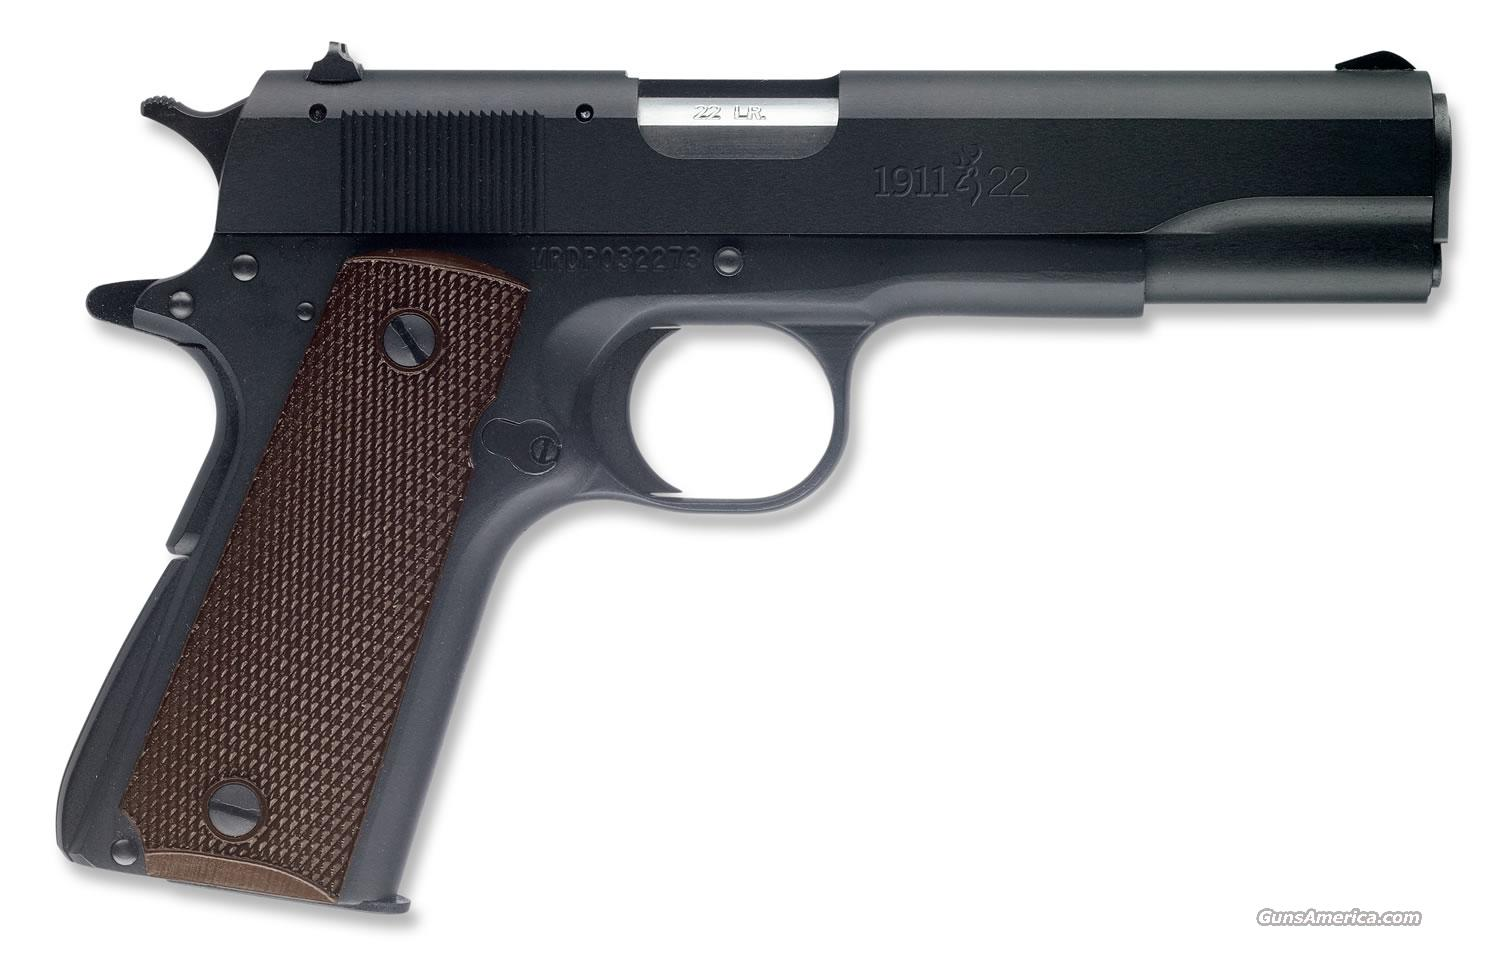 Browning 1911-22 A1 pistol 22 LR  New!  LAYAWAY OPTION  051802490  Guns > Pistols > Browning Pistols > Other Autos